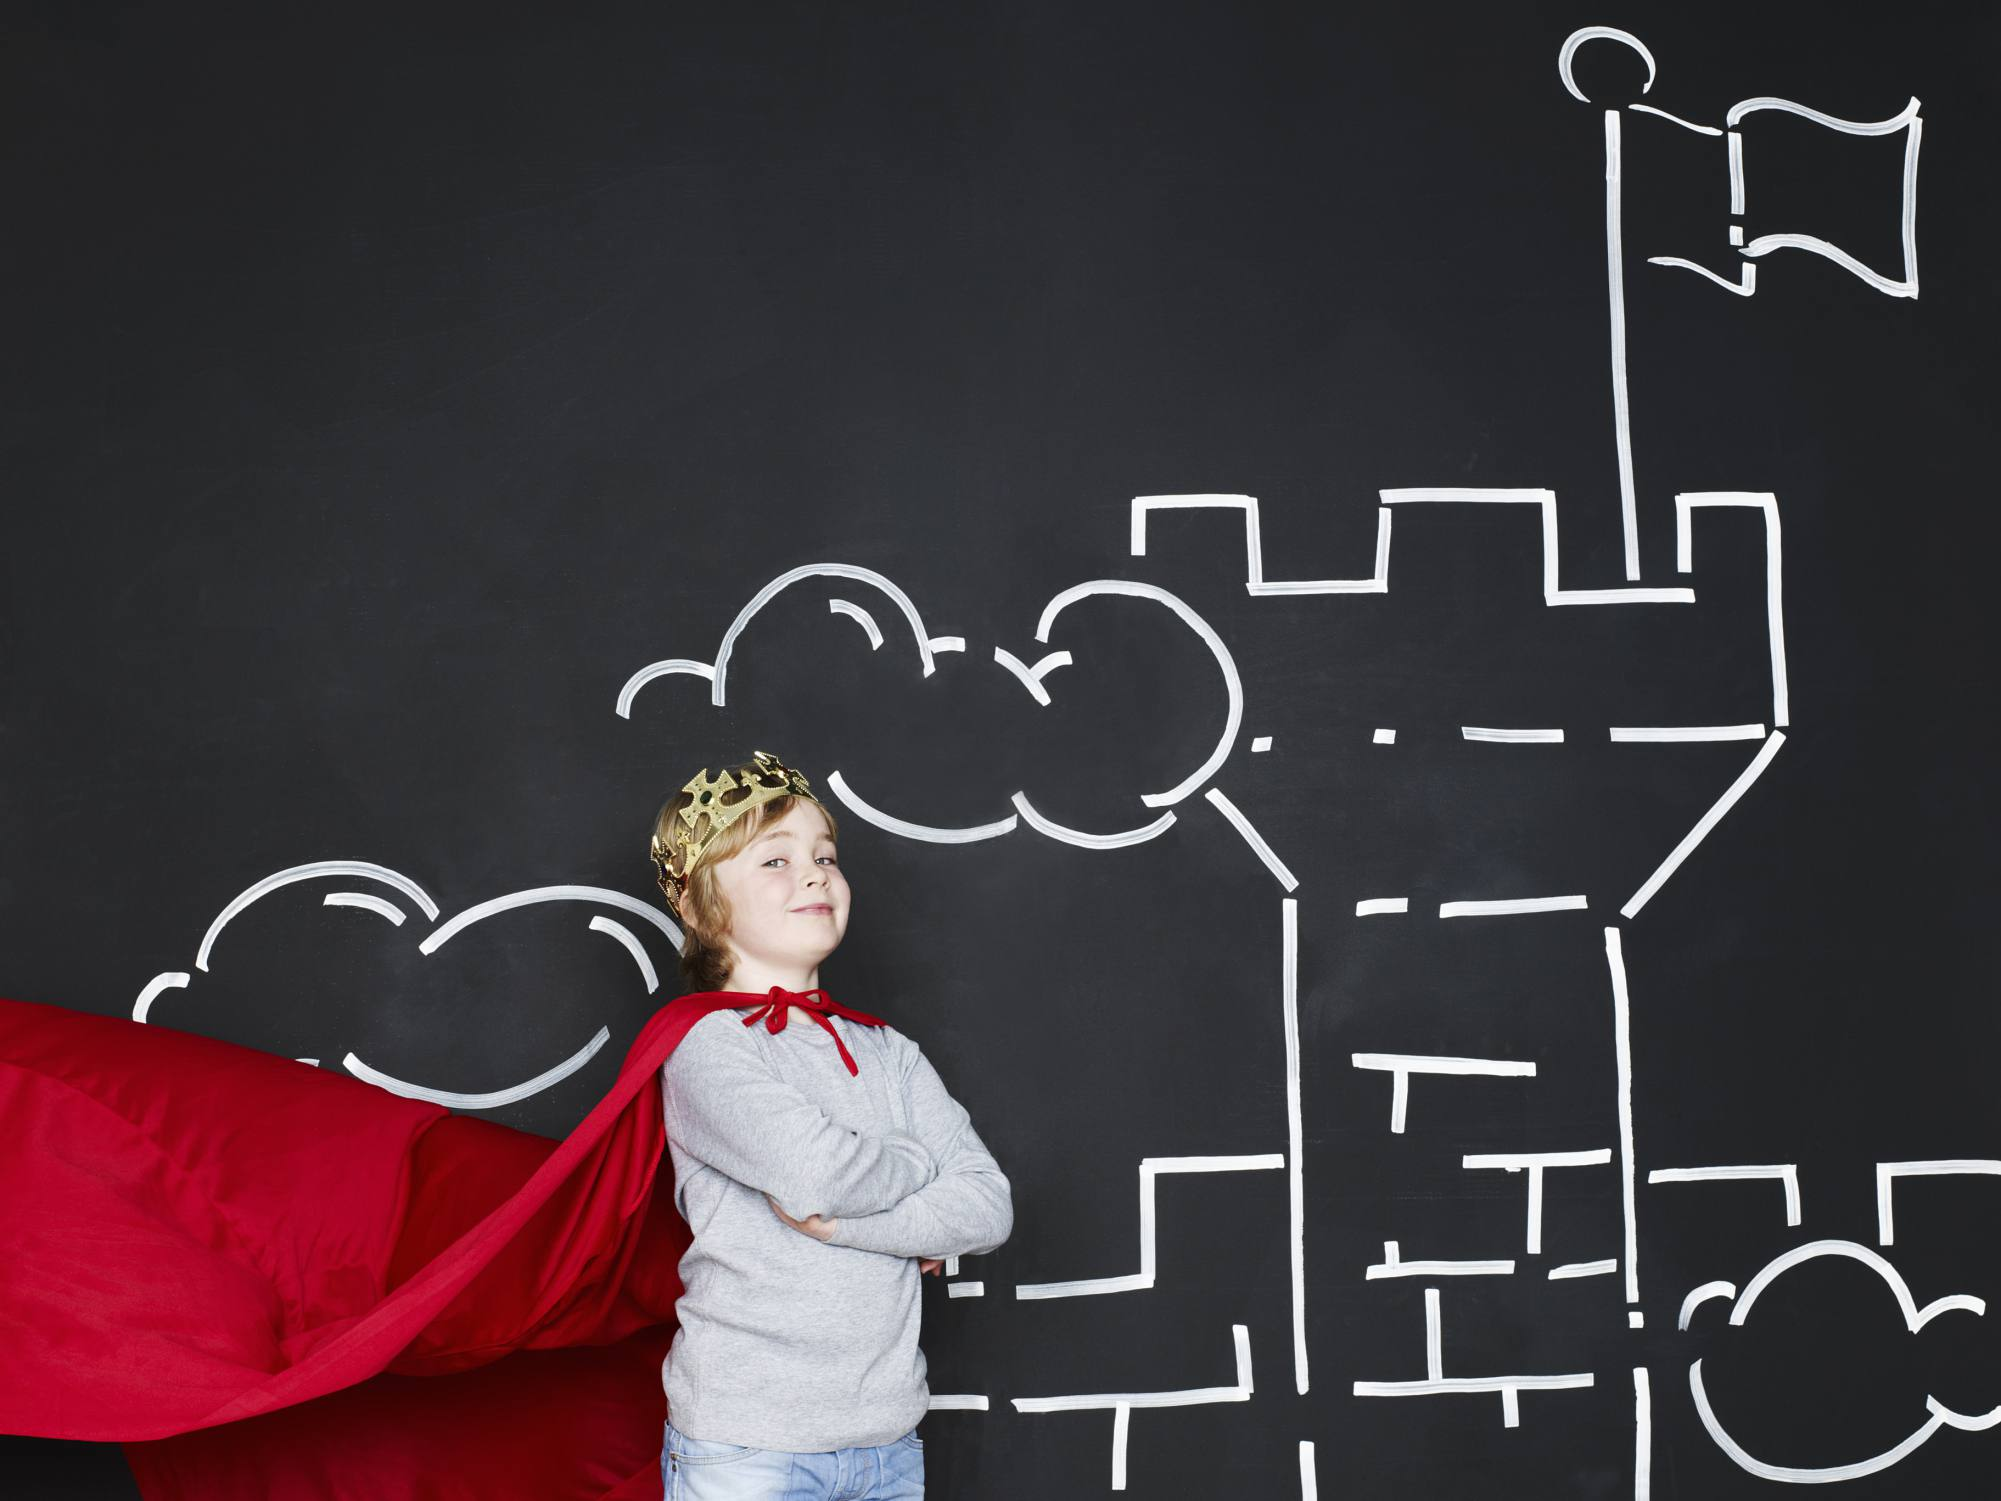 Boy in cape, like a superhero, standing in front of black board with drawing of castle on it